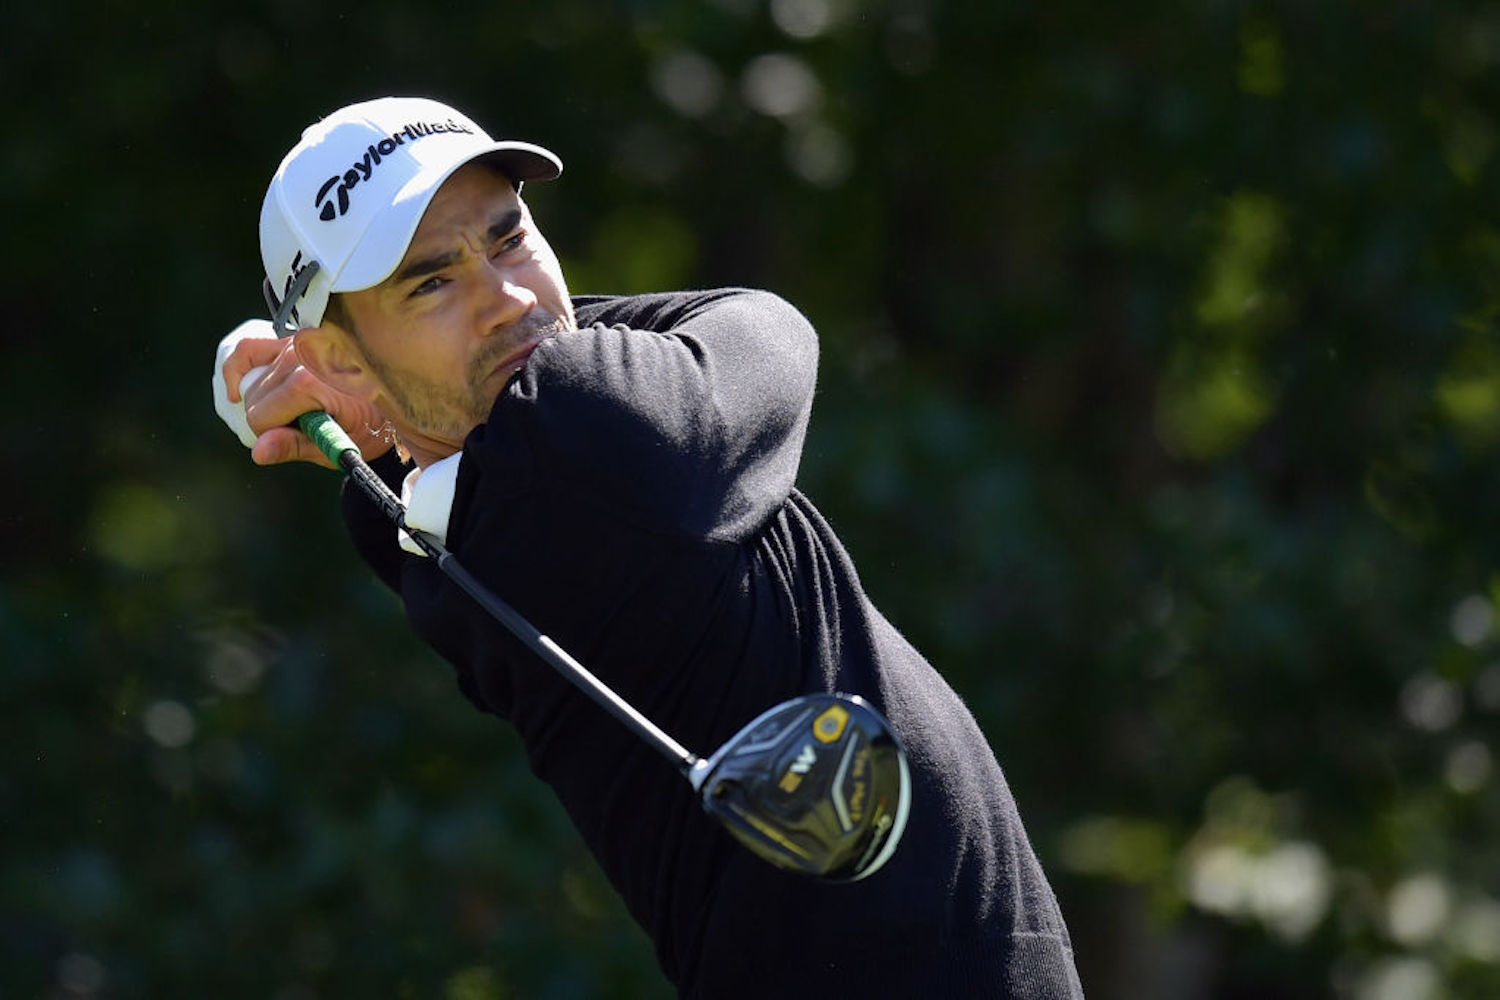 Camilo Villegas has been taking time away from golf to be with his 22-month-old daughter, but she passed away Sunday after battling tumors.